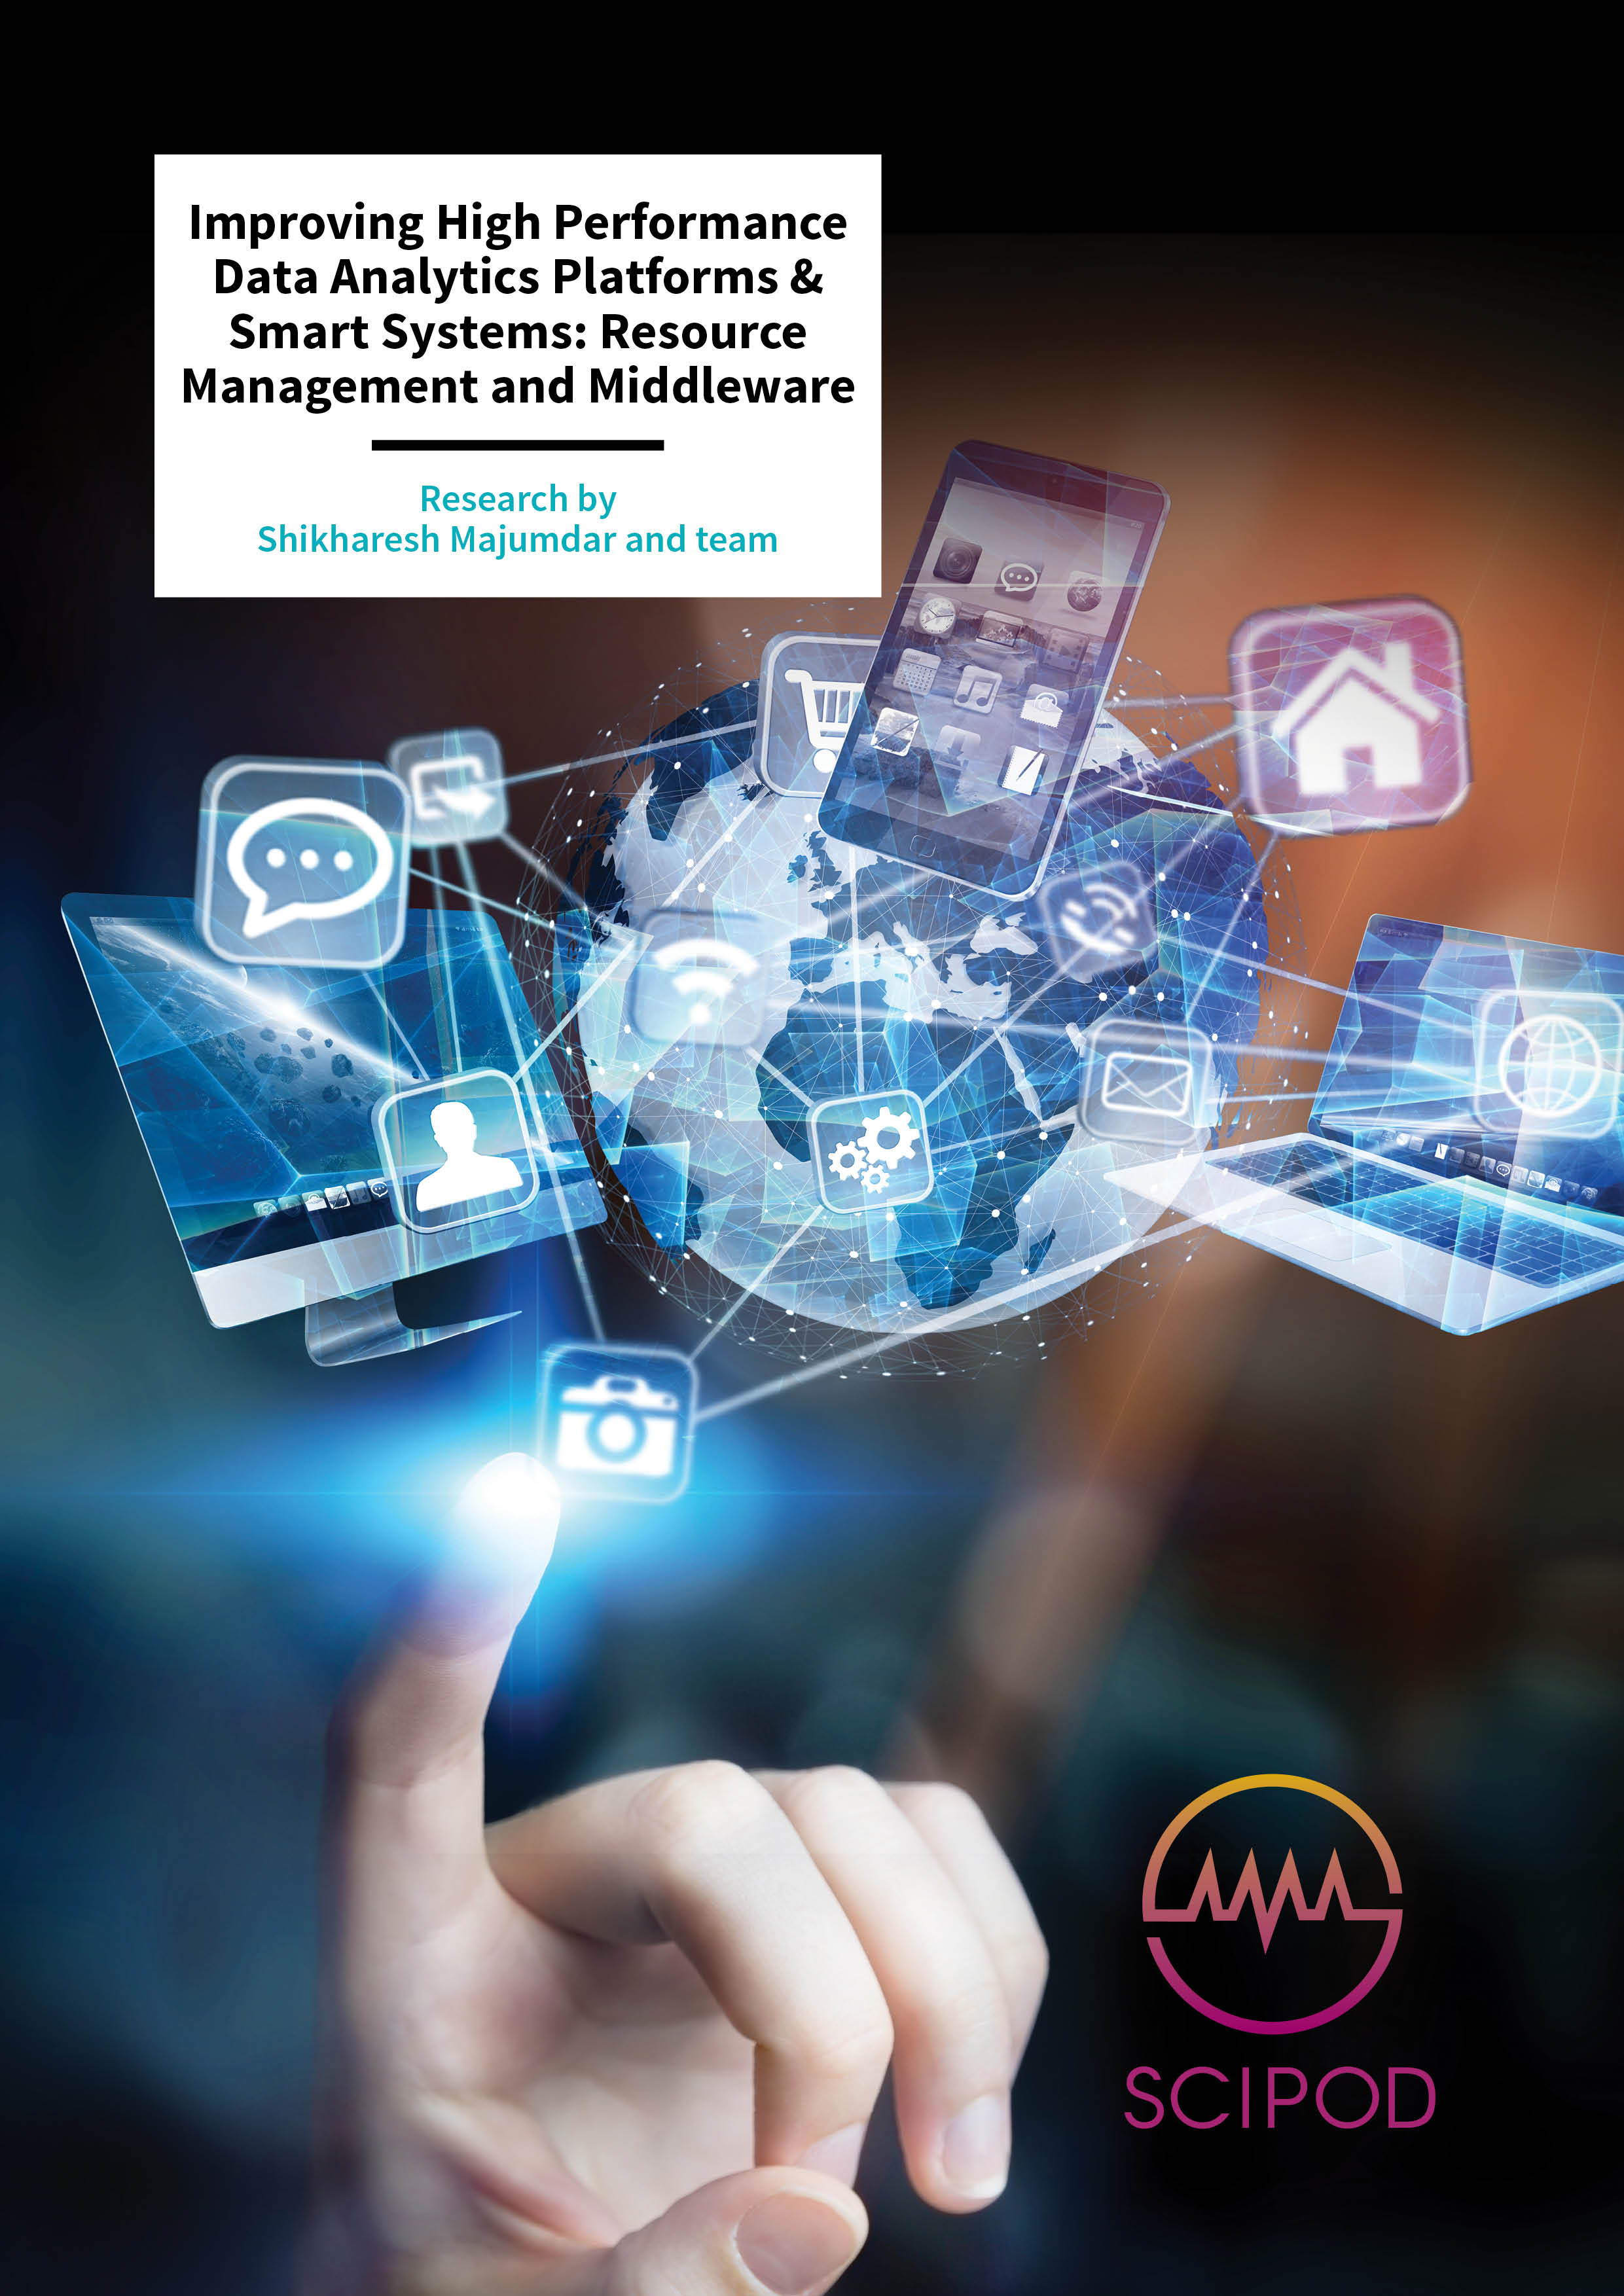 Improving High Performance Data Analytics Platforms & Smart Systems: Resource Management and Middleware